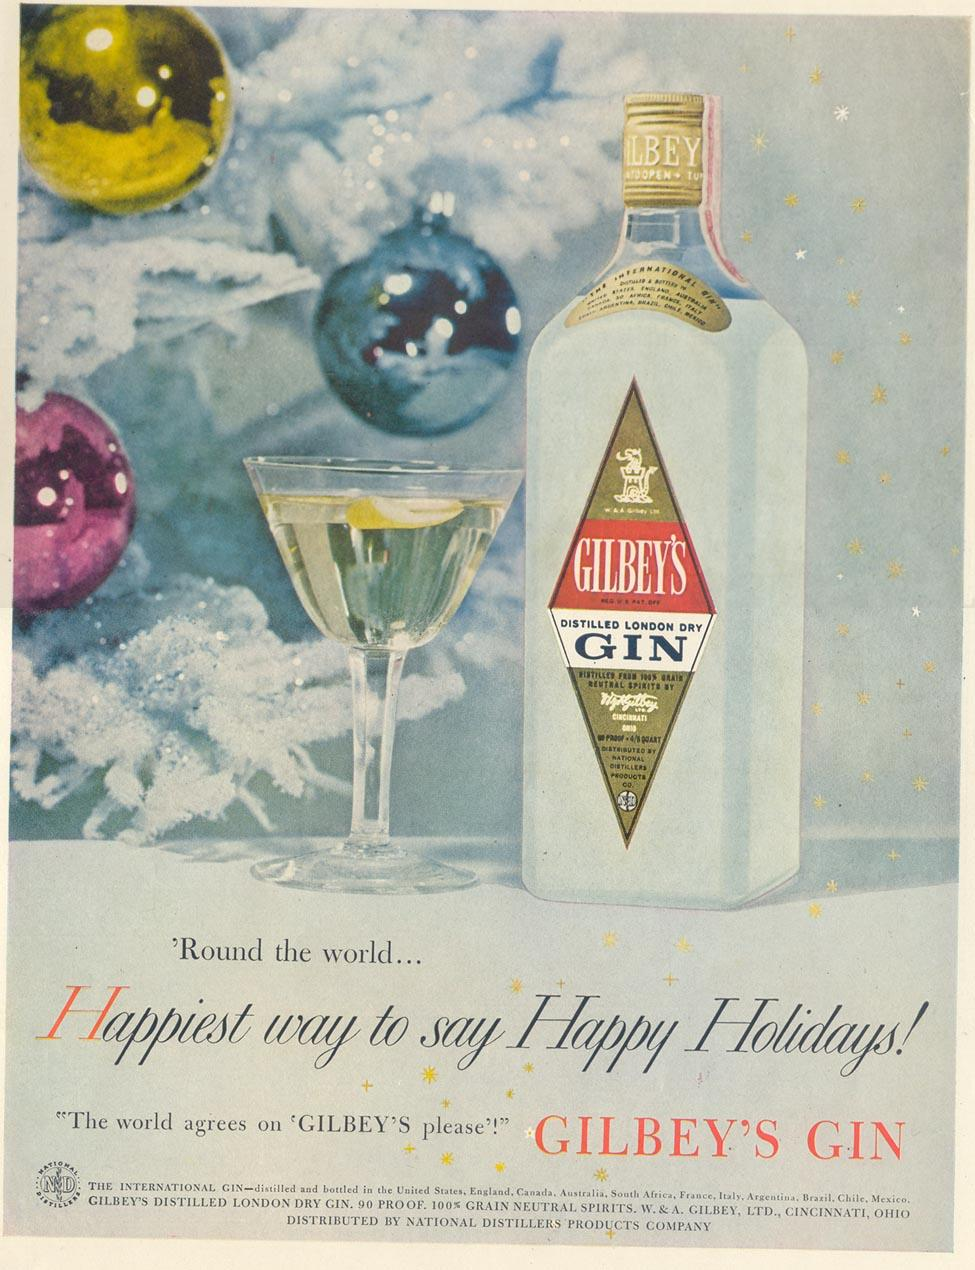 GILBEY'S GIN LIFE 11/11/1957 INSIDE BACK